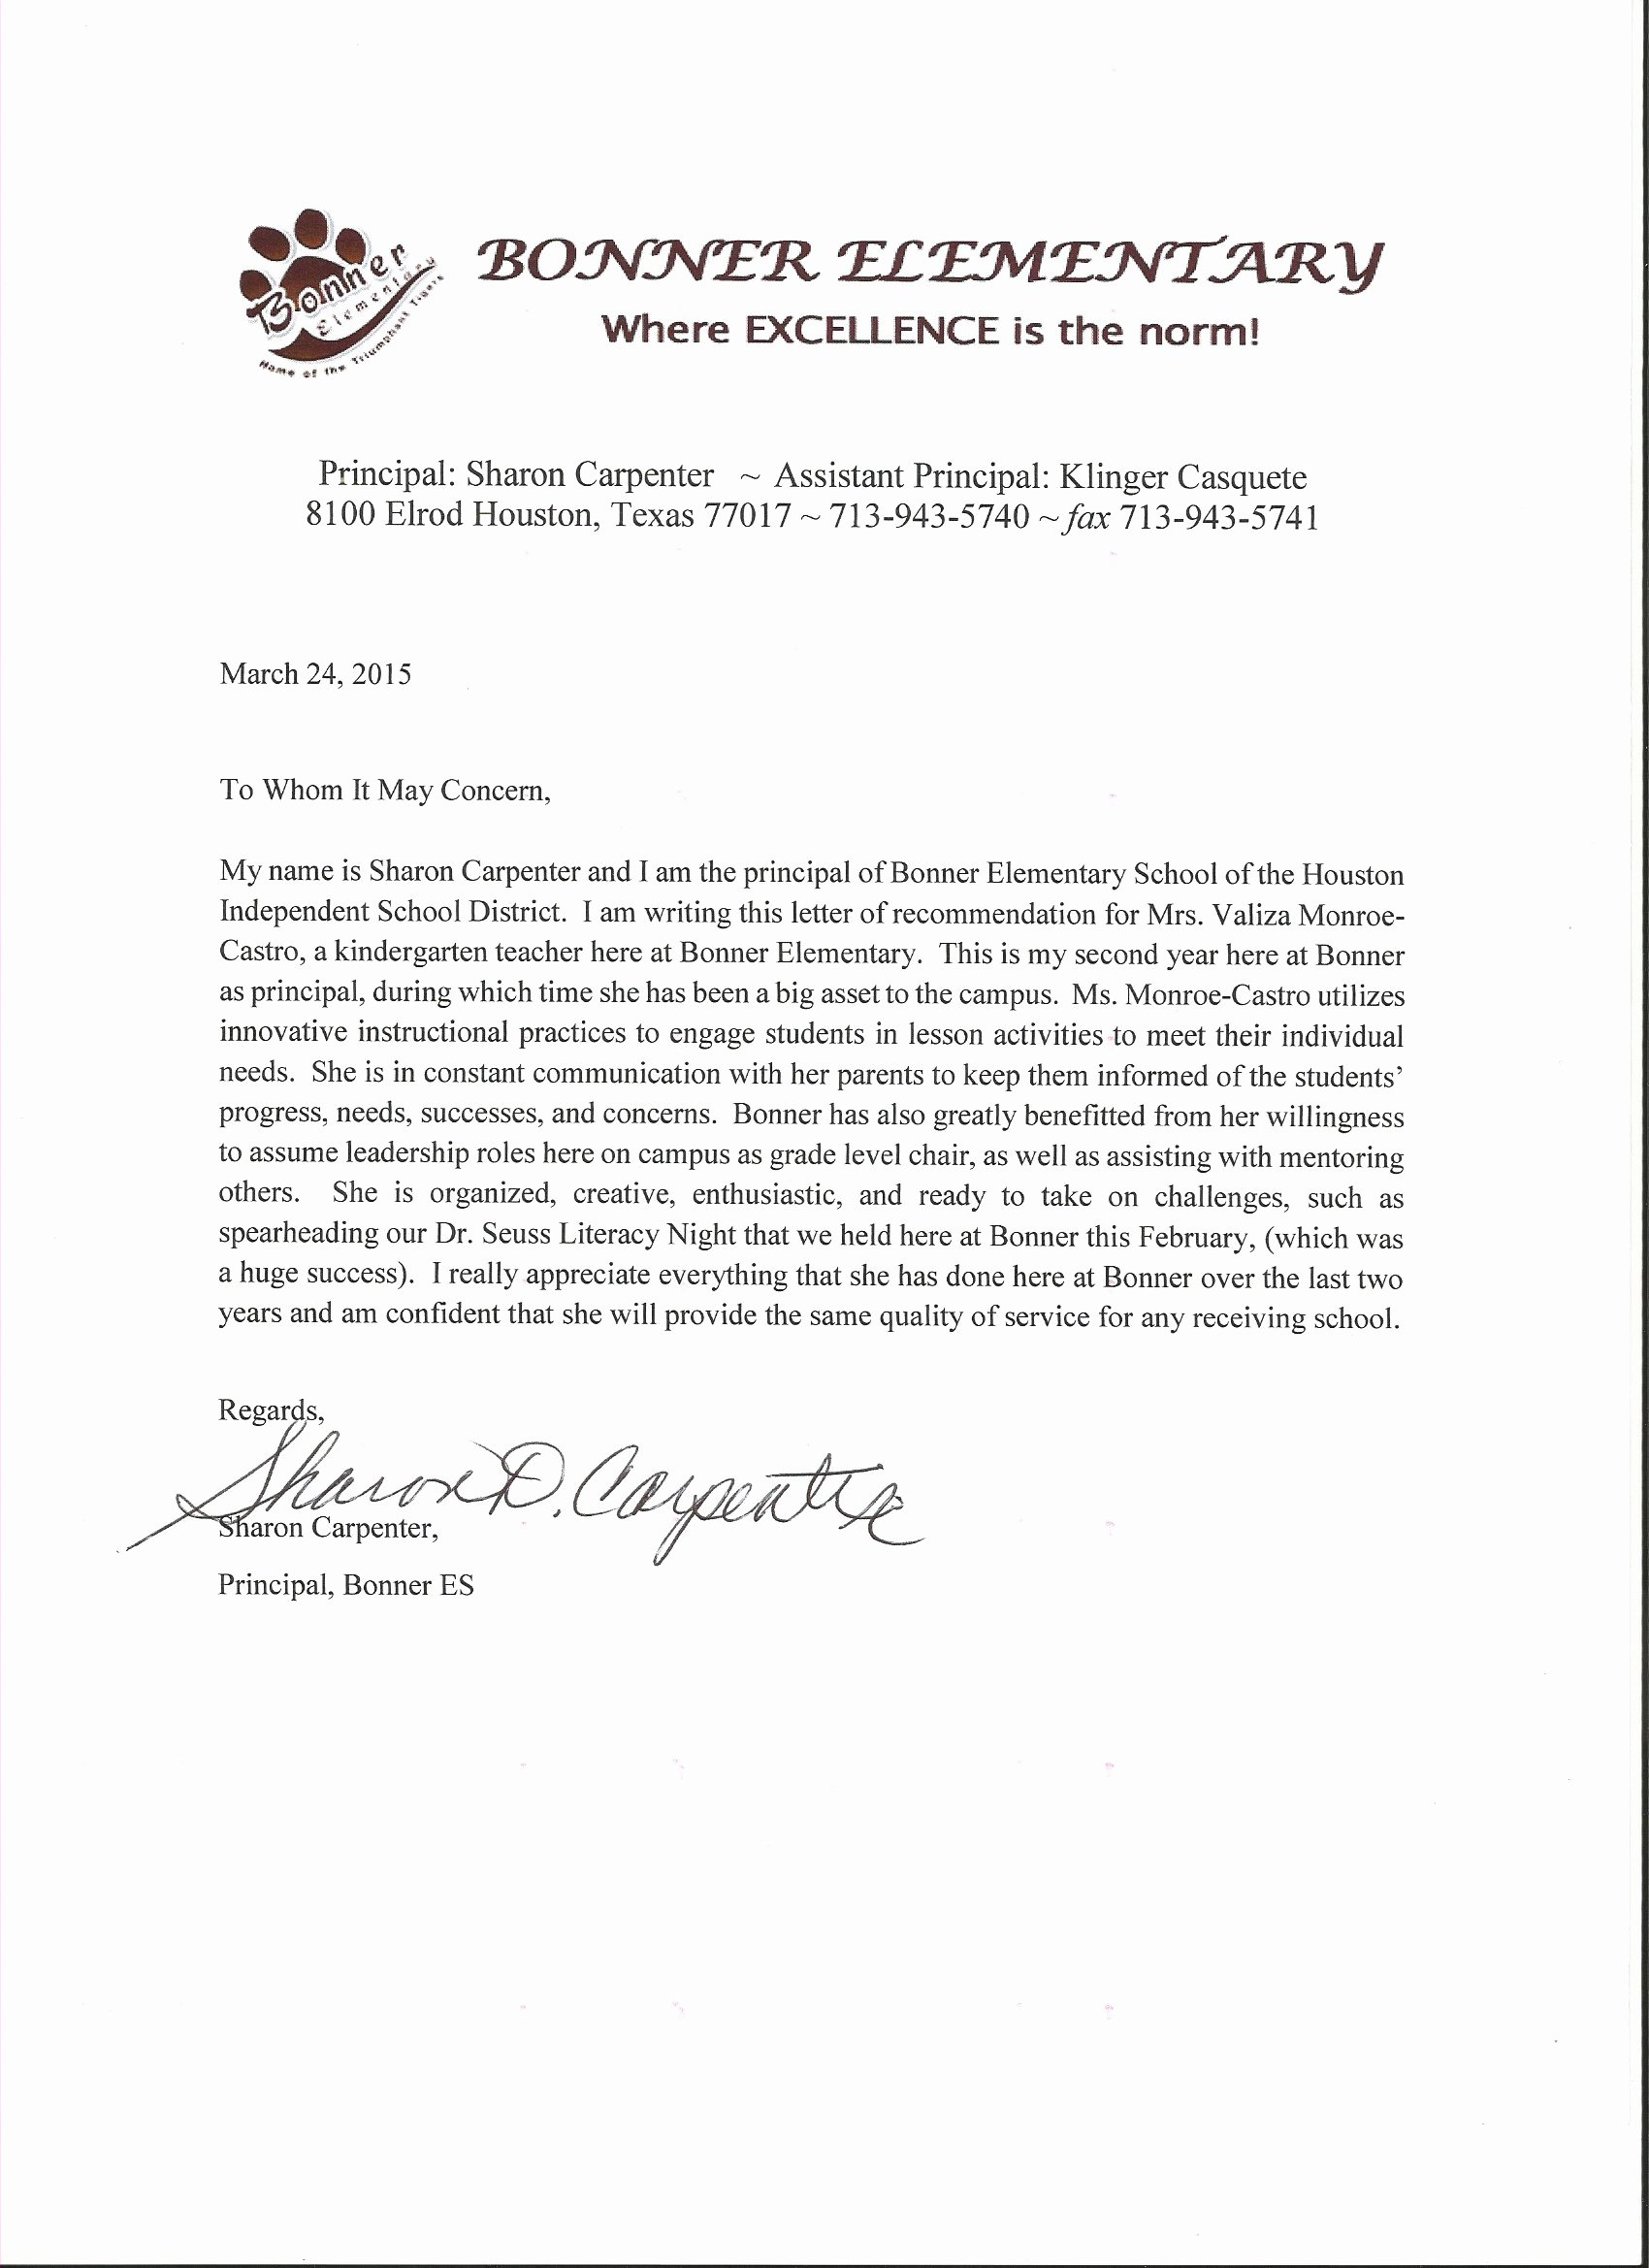 Letter Of Recommendation for Principal New About Me Valiza ortiz Monroe